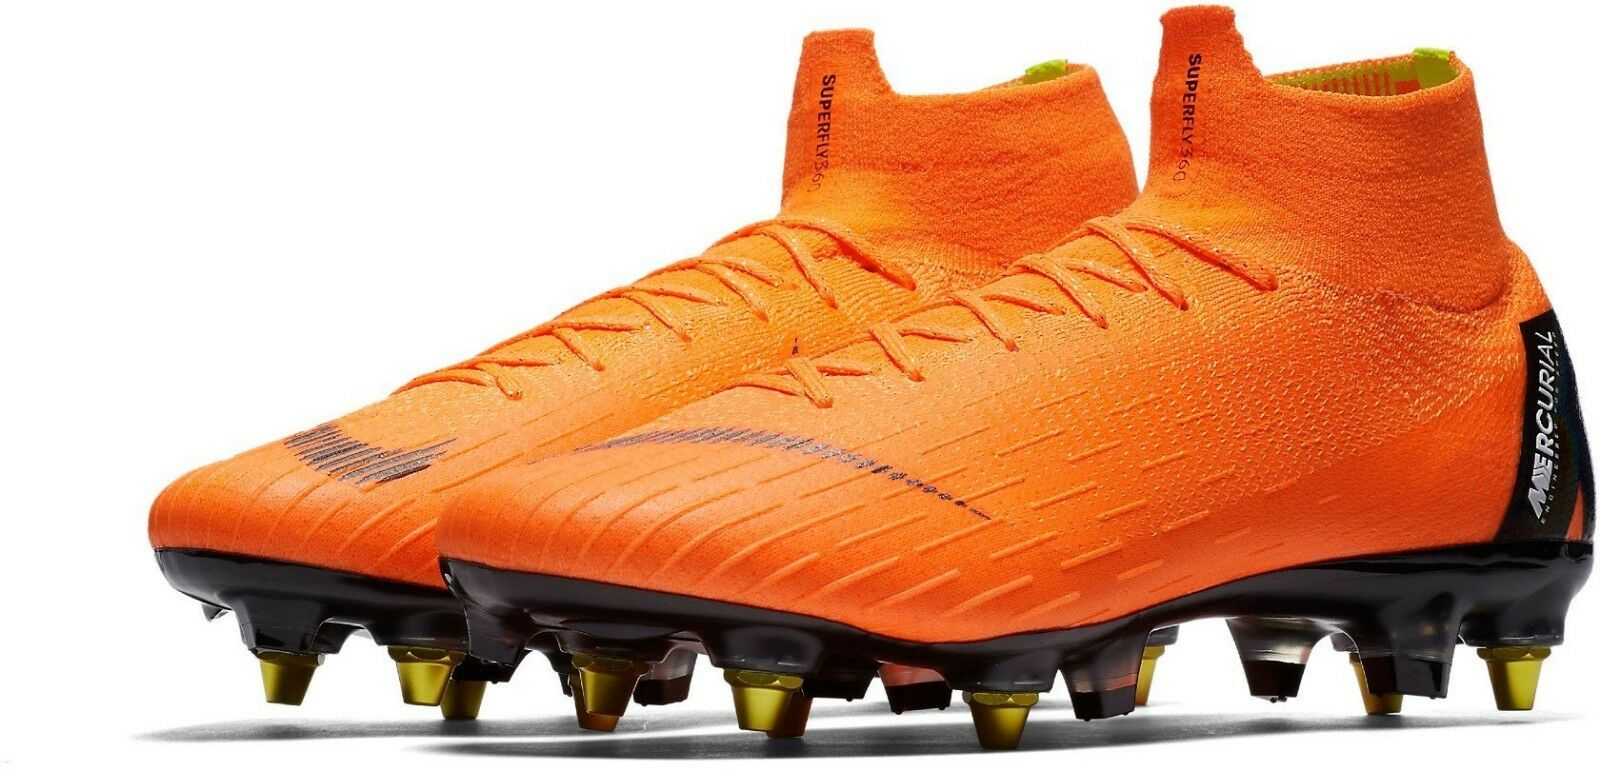 Nike súperfly 6 Elite Sg-pro anti obstruir-UK Talla 6-Naranja Negro (AH7366-810)